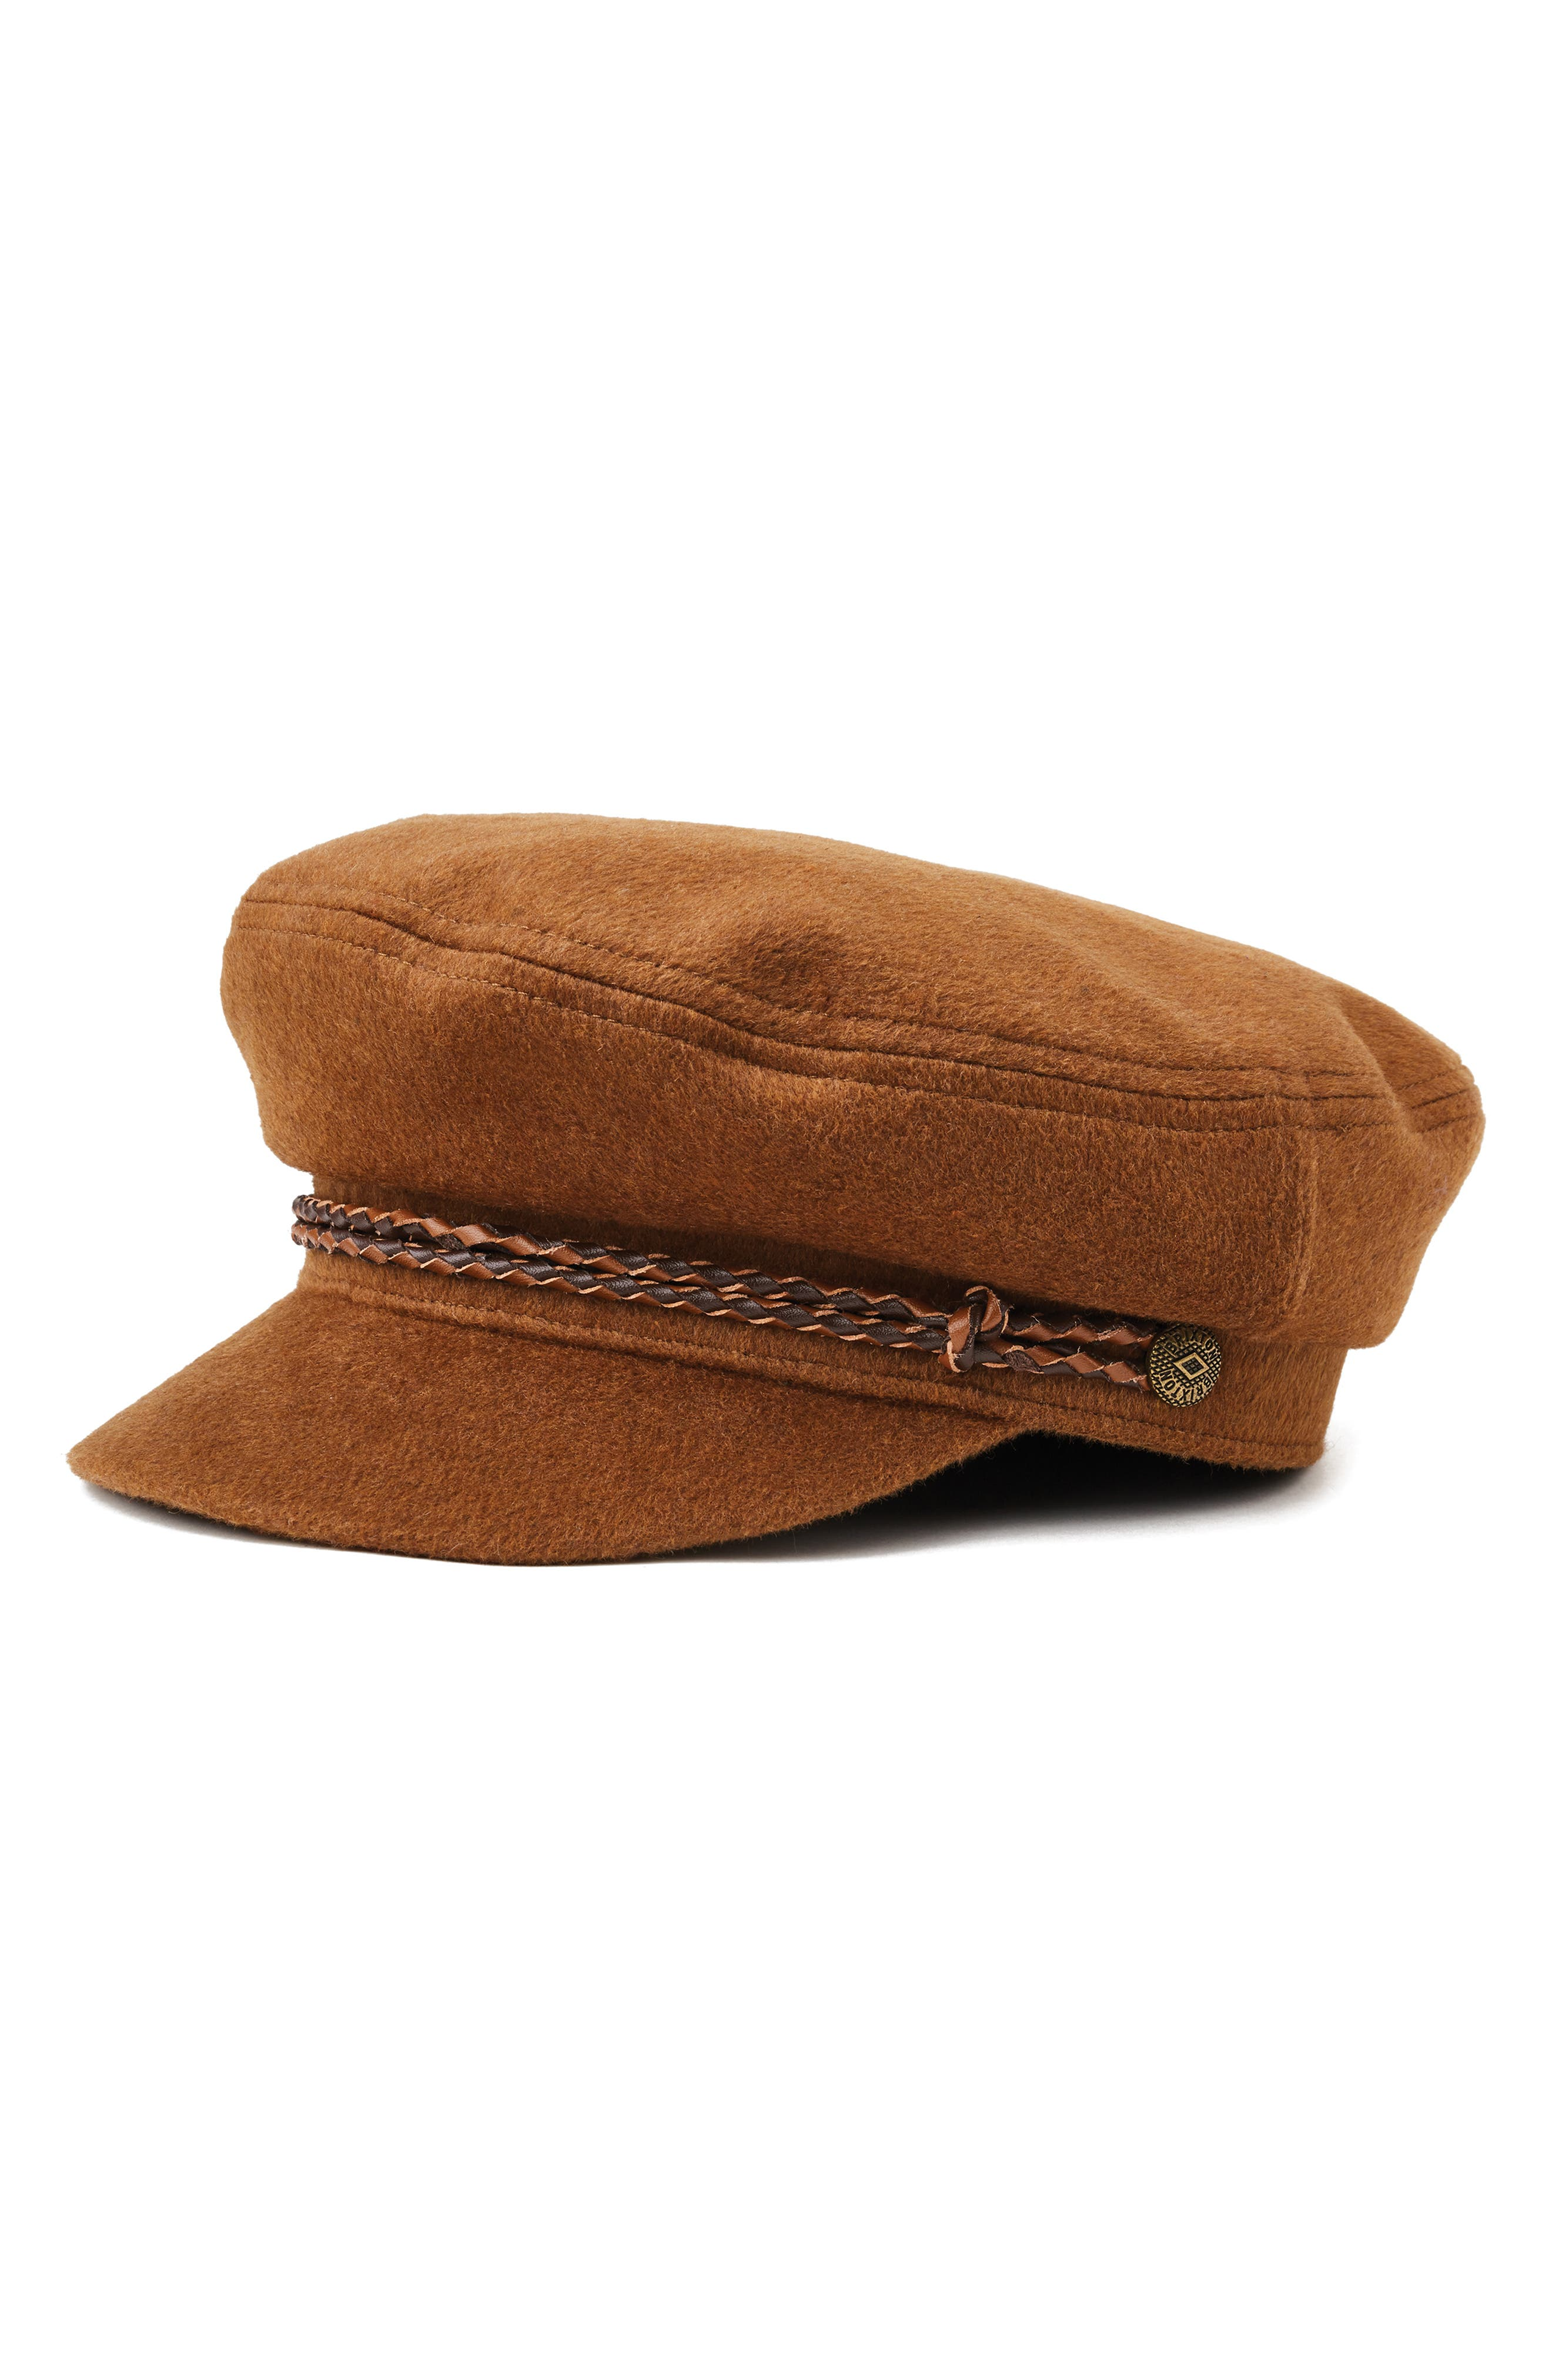 Ashland Fisherman Cap,                             Main thumbnail 1, color,                             COFFEE